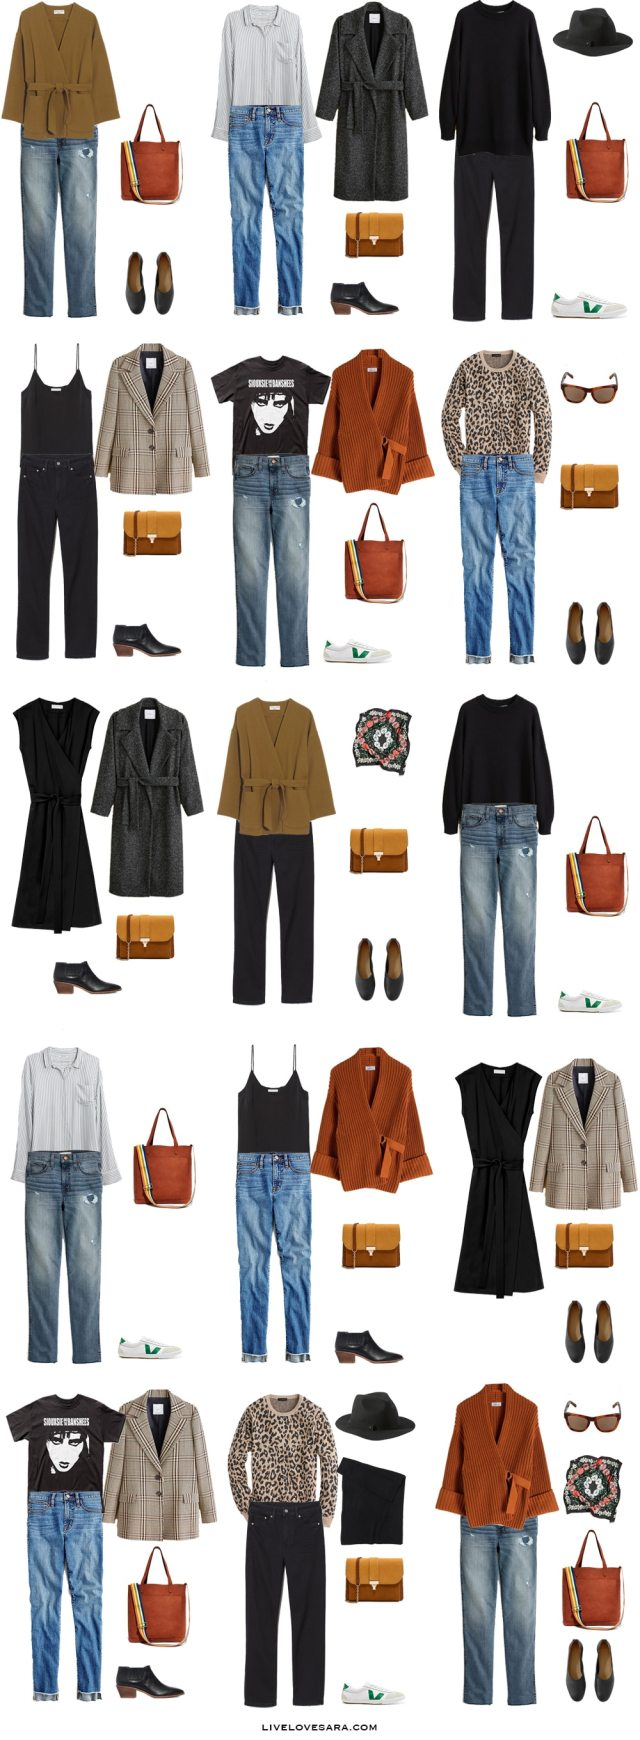 Do you need outfit ideas for what to pack for Budapest, Hungary in the spring? Head over to my post for what to pack and outfit ideas. Budapest, Hungary Packing Light List | What to pack for Budapest | What to Pack for Hungary | #worldtravel #springtravel #packinglight Packing Light | Packing List | Travel Light | Travel Wardrobe | Travel Capsule | Capsule | Pack for vacation #travellight #packinglight #travelcapsule #capsulewardrobe #capsule